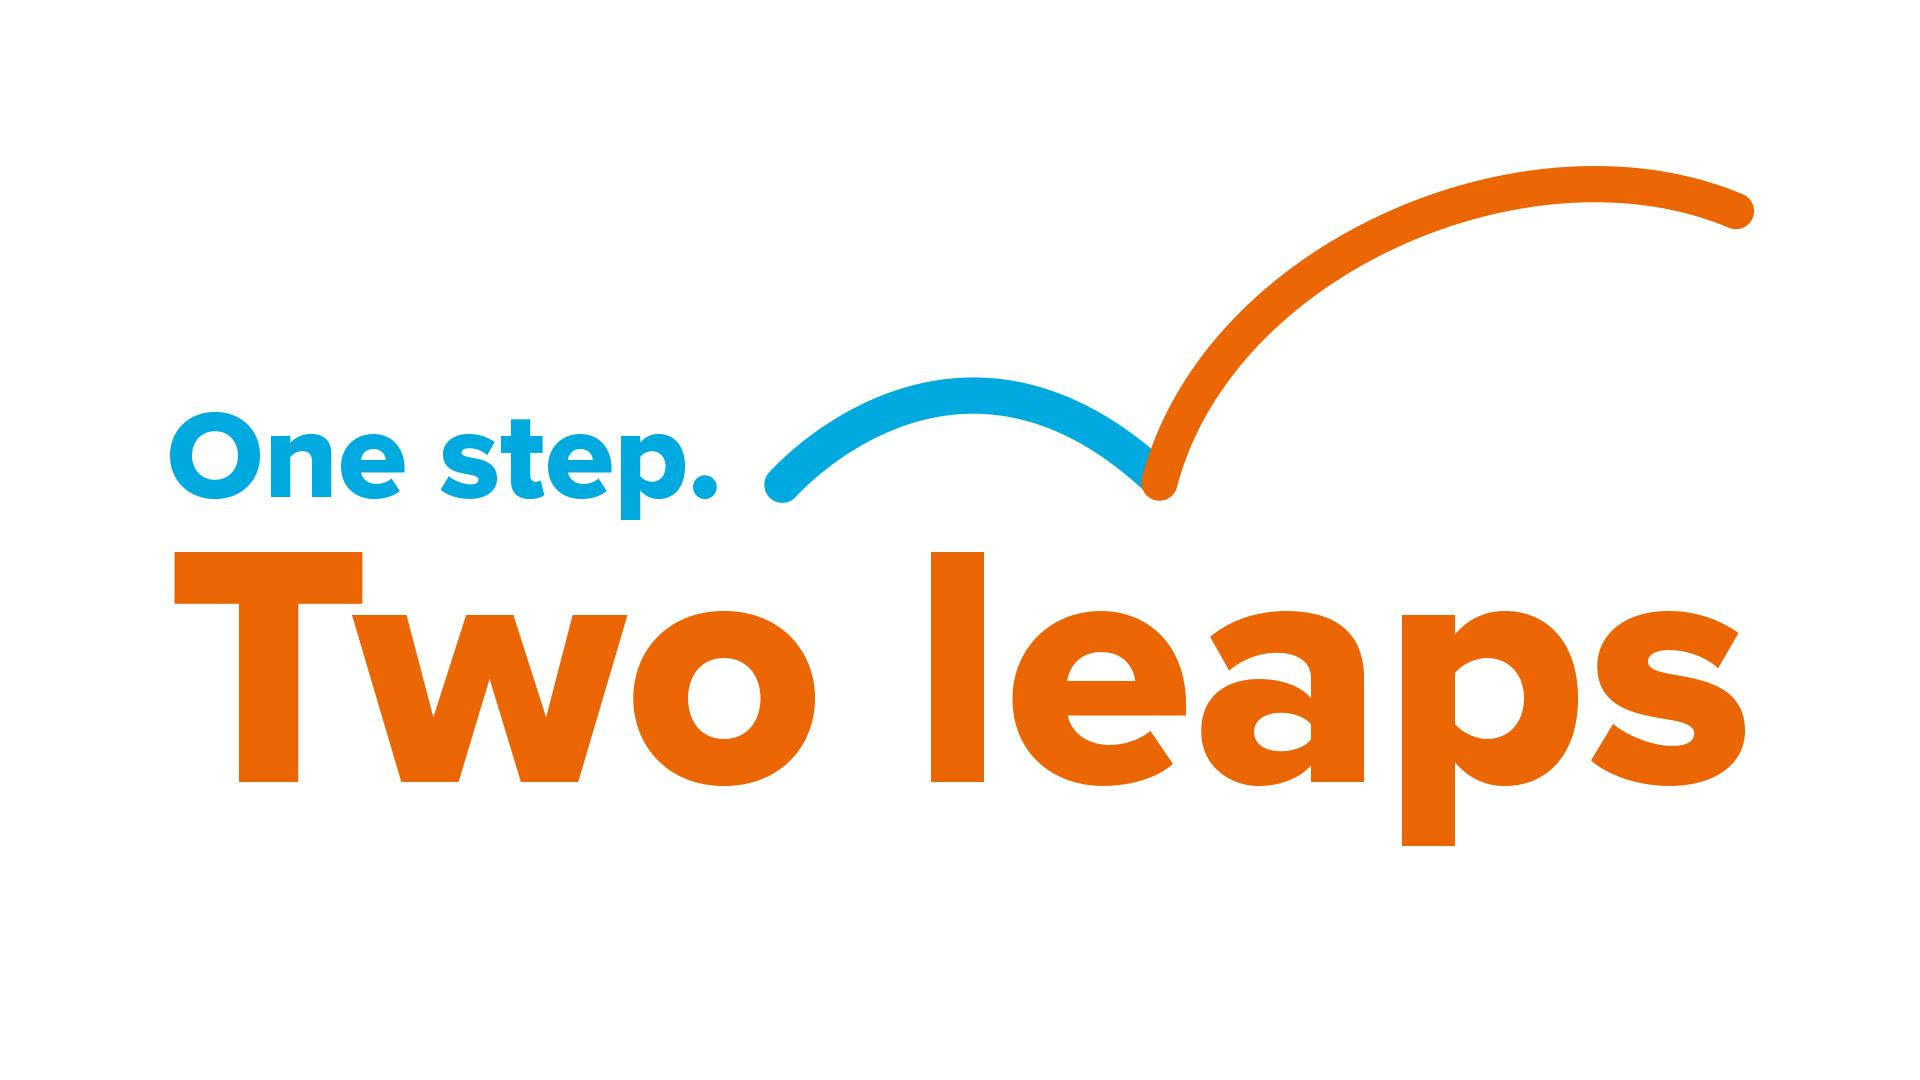 Siemens Healthineers one step, two leaps